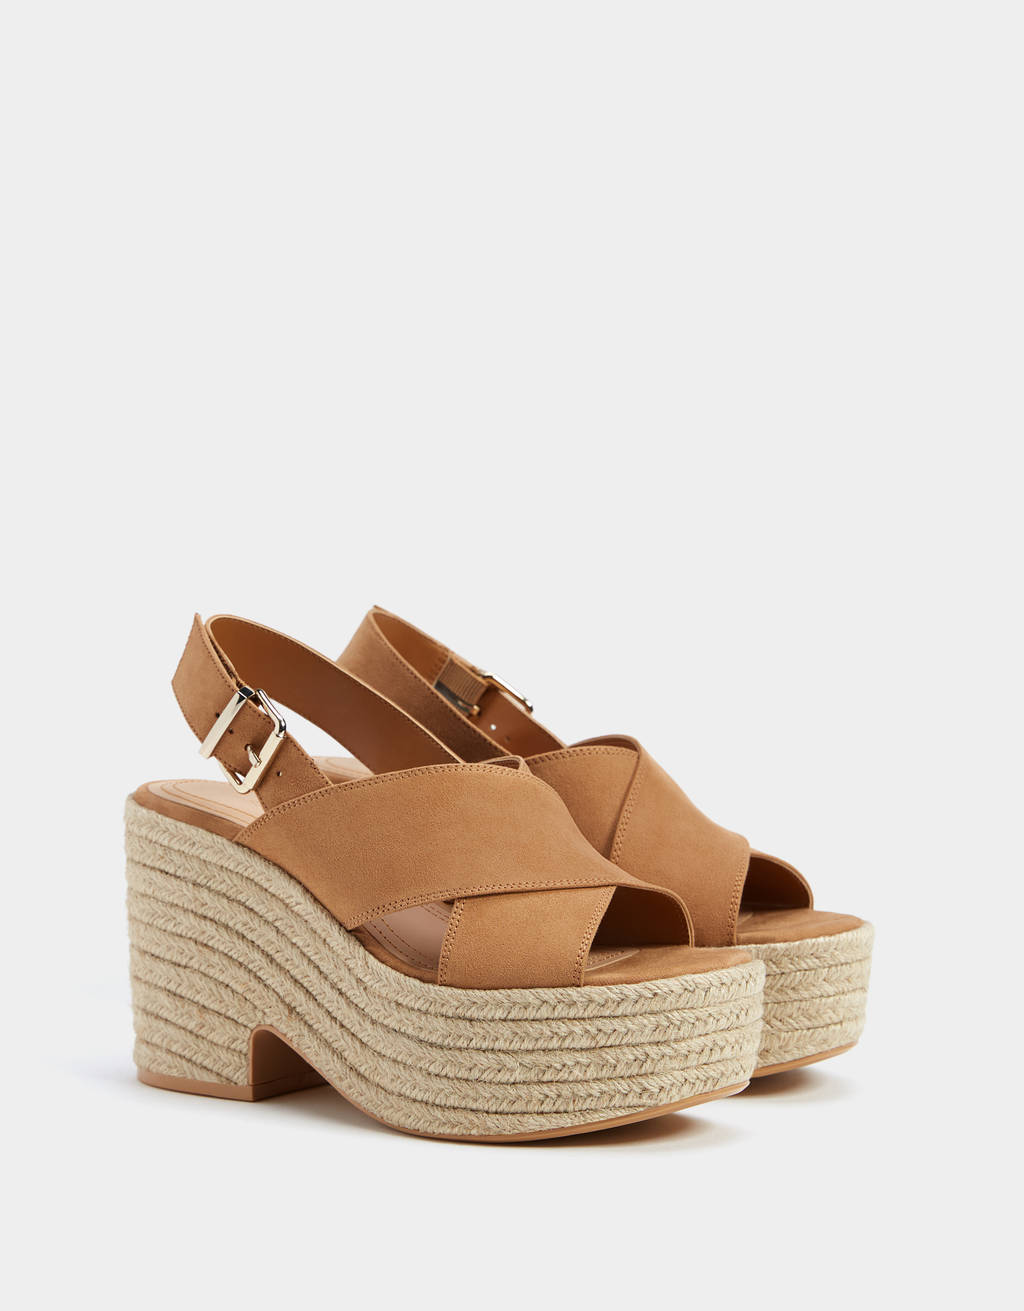 c1f061e50 Women's Shoes - Summer Sale 2019 | Bershka